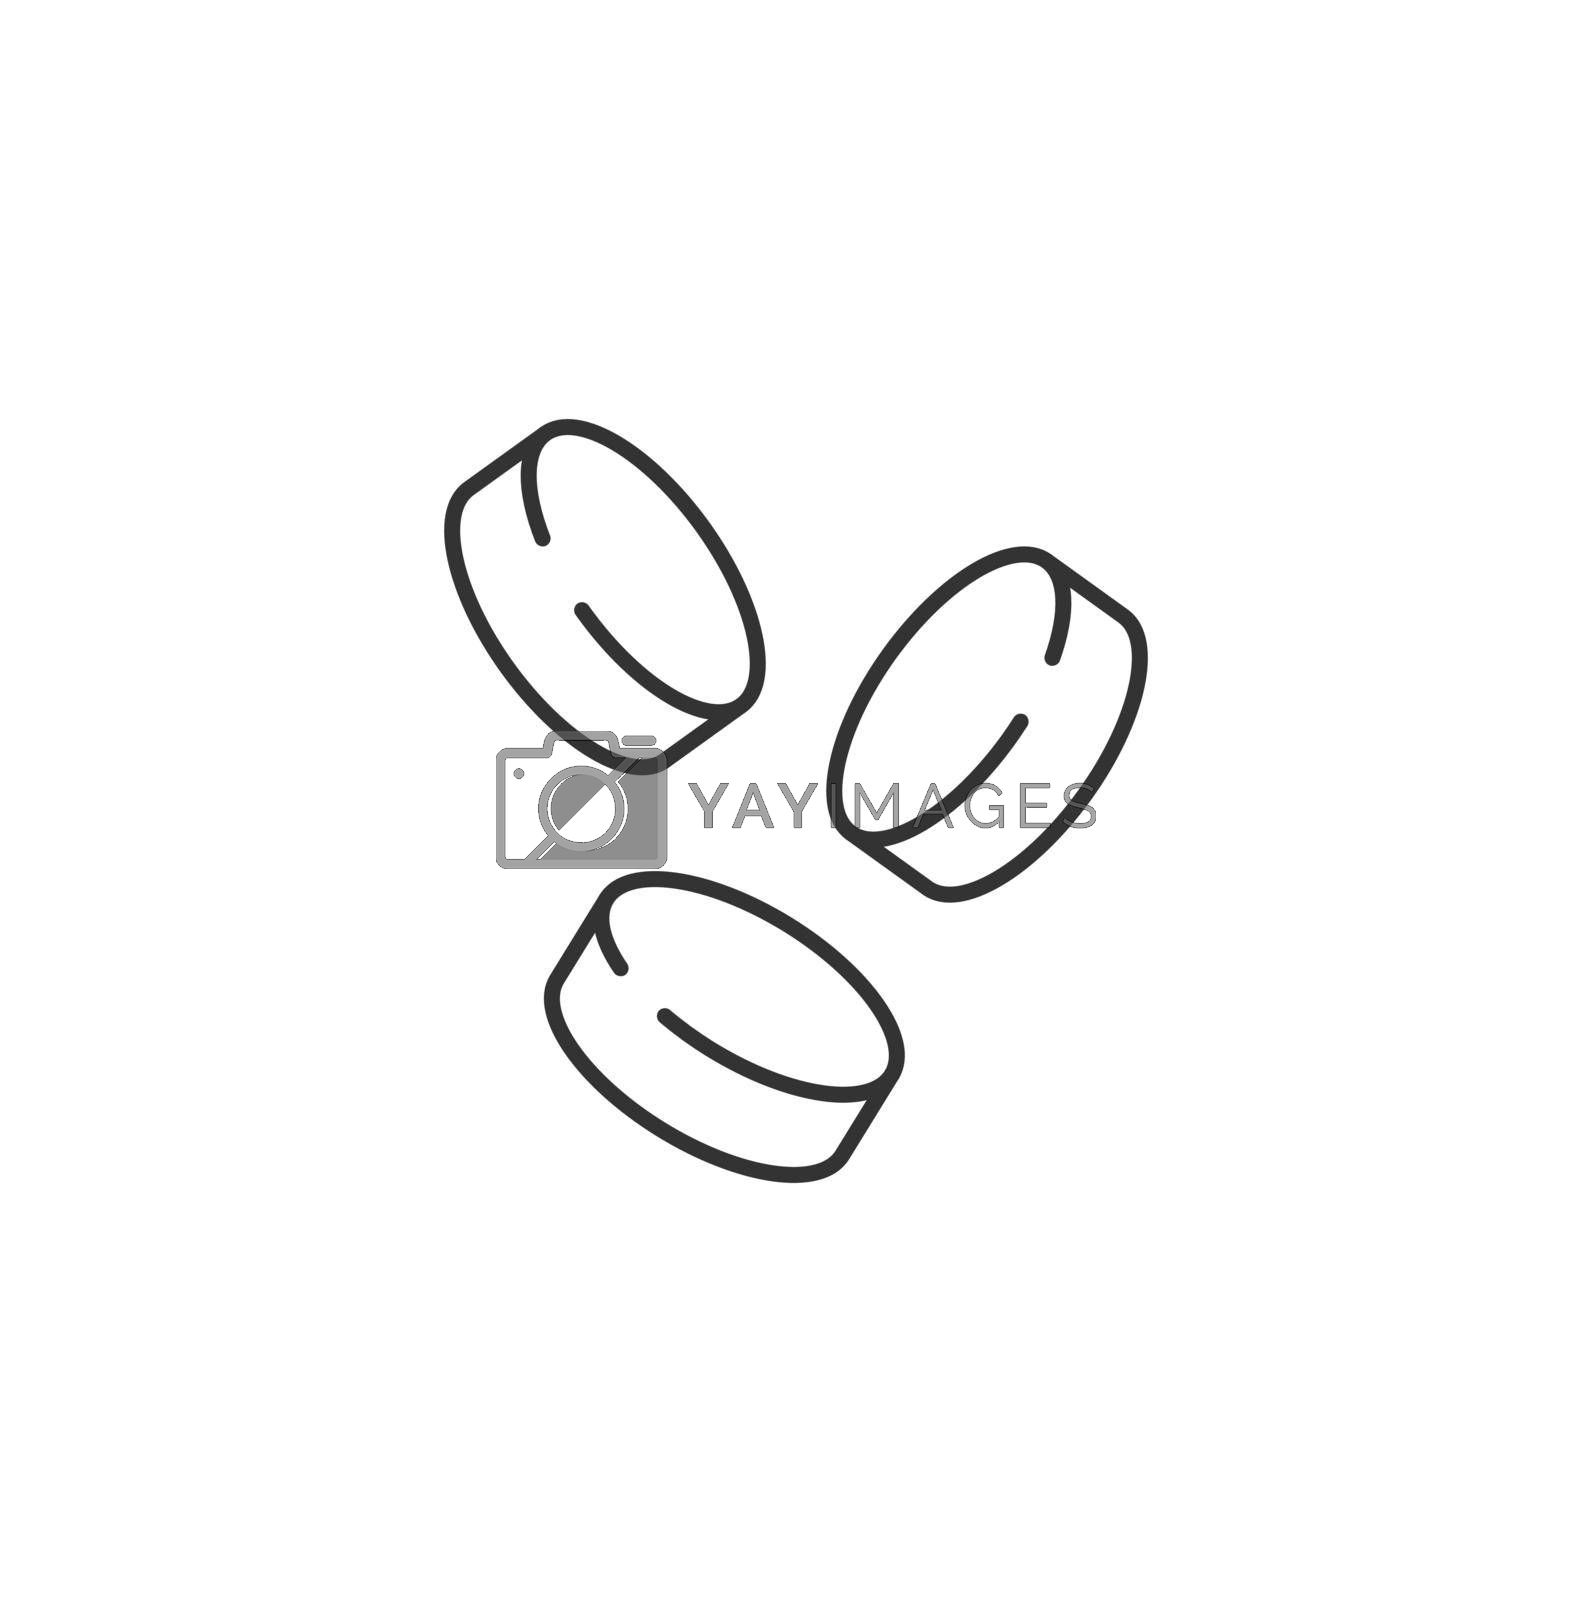 Coins Related Vector Line Icon. Sign Isolated on the White Background. Editable Stroke EPS file. Vector illustration.